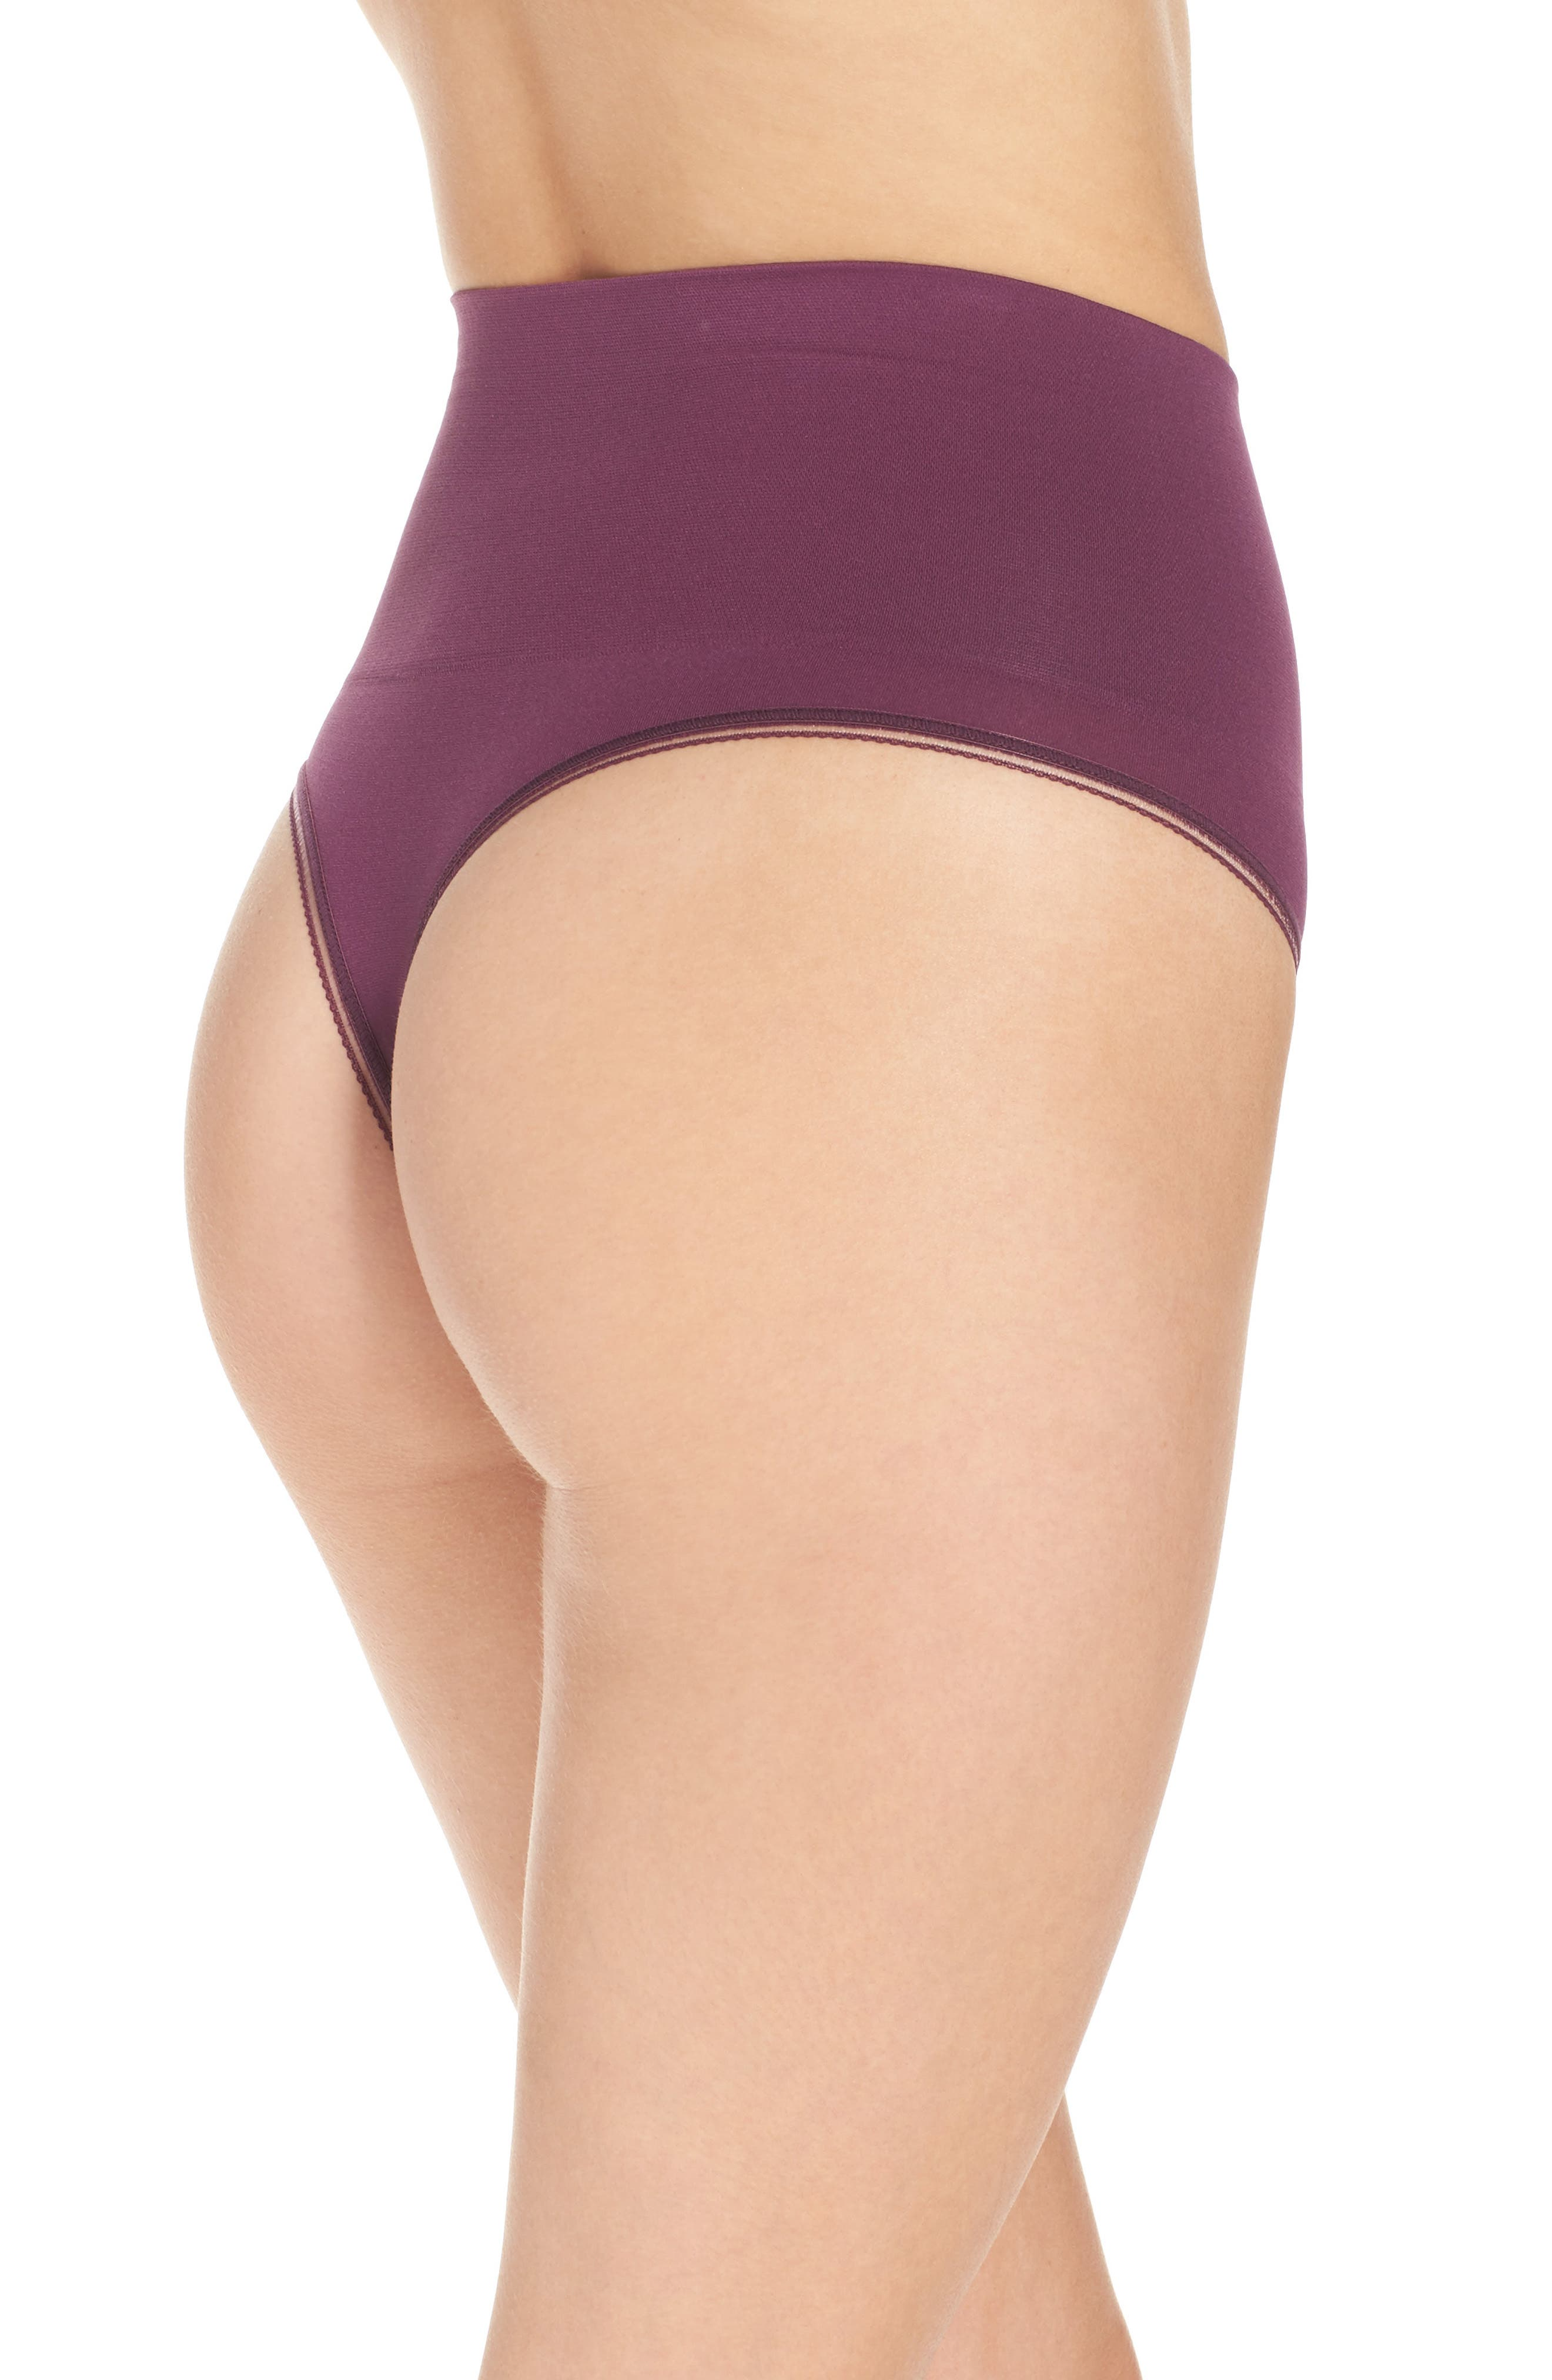 Alternate Image 2  - Yummie Ultralight Seamless Shaping Thong (2 for $30)